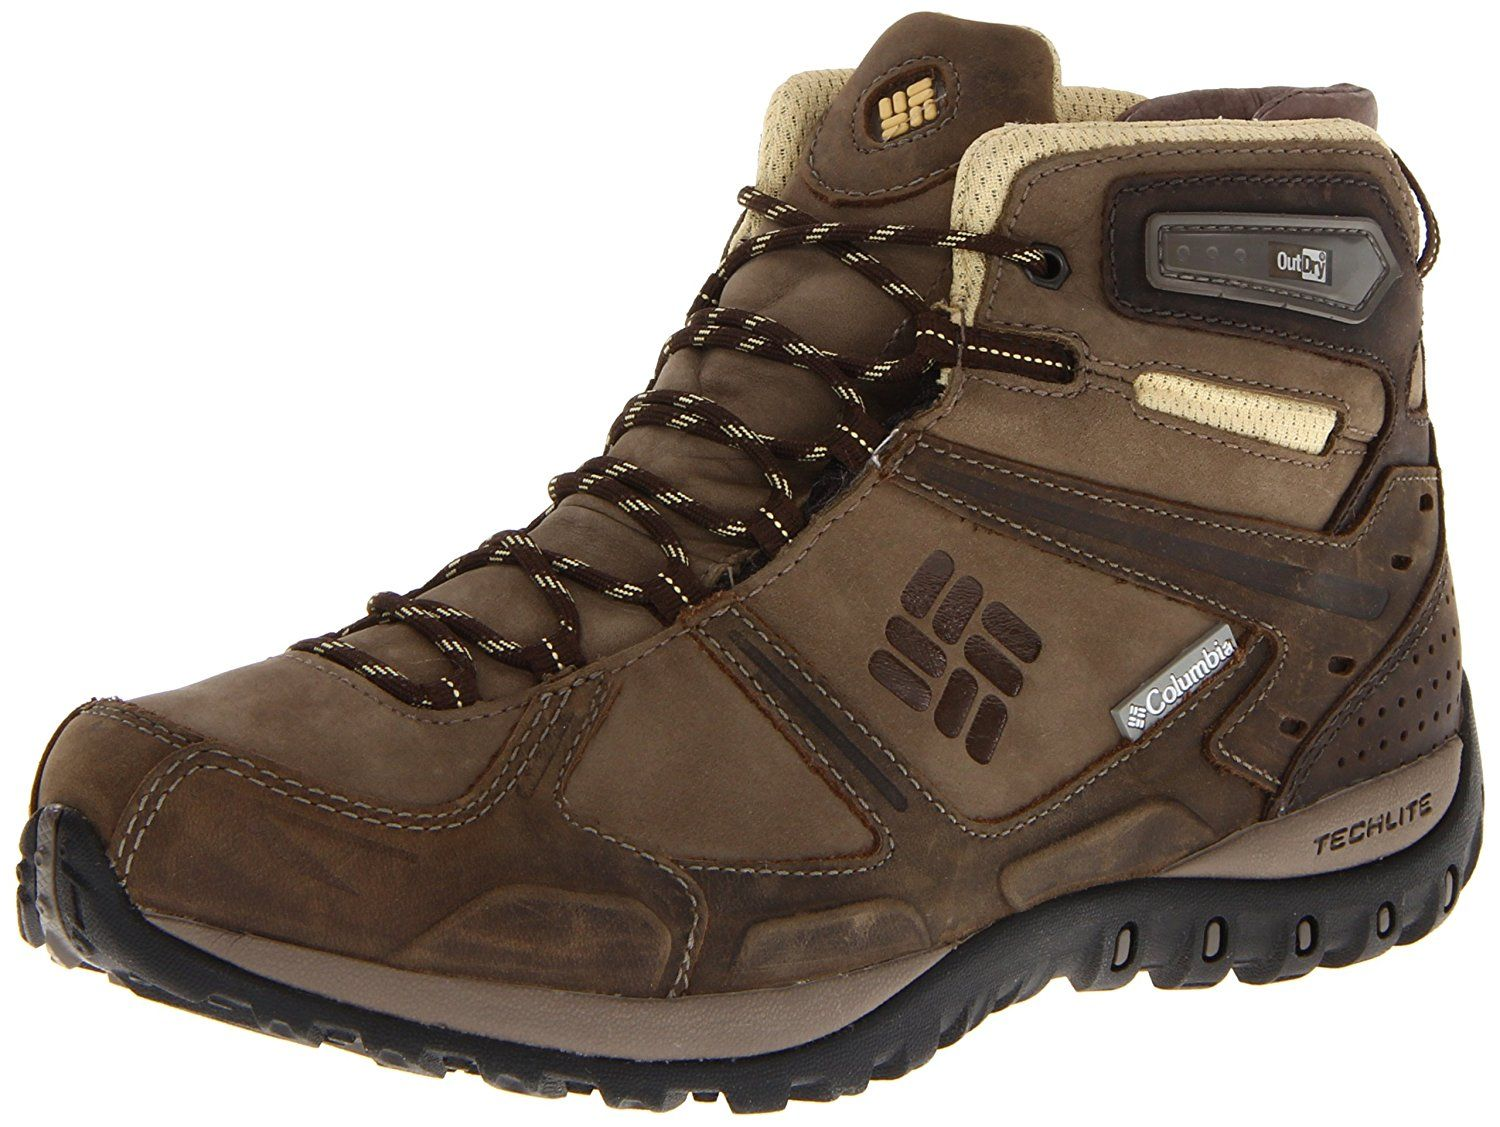 Columbia Women S Yama Mid Leather Outdry Hiking Shoe Want Additional Info Click On The Image Brown Boots Women Hiking Shoes Women Hiking Women